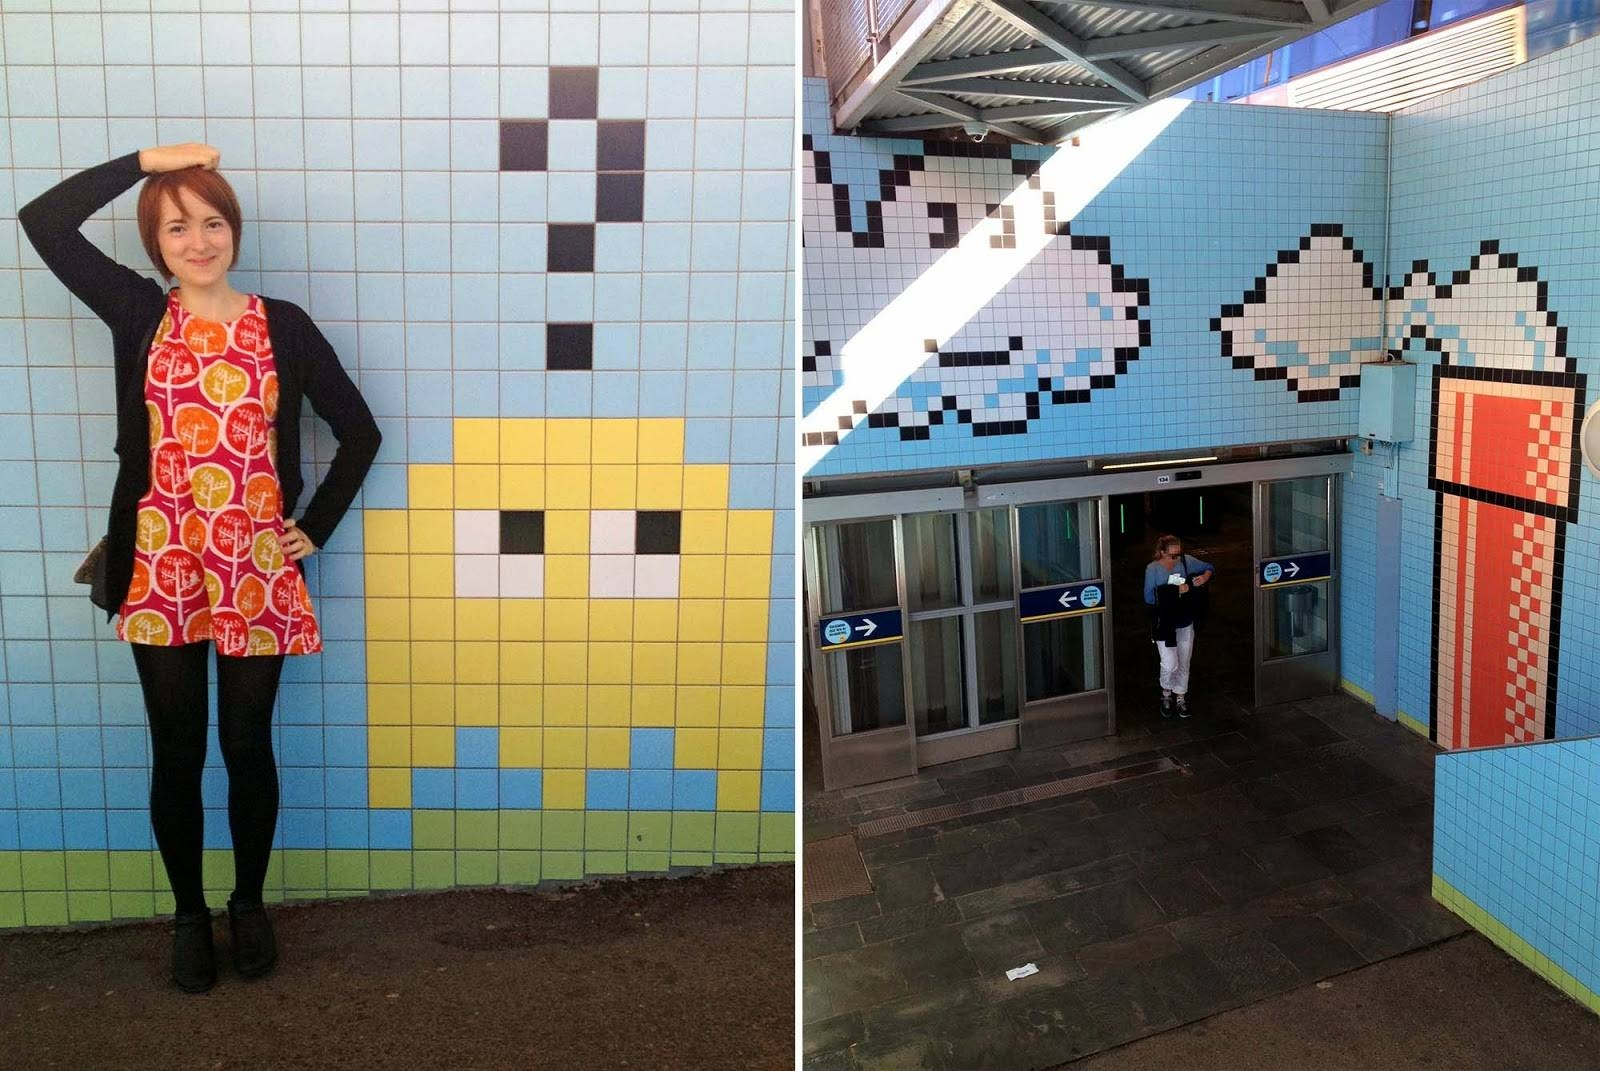 Video Game Mosaic Pixel Art Subway Station In Stockholm | Cute Travels Regarding Current Pixel Mosaic Wall Art (View 17 of 20)